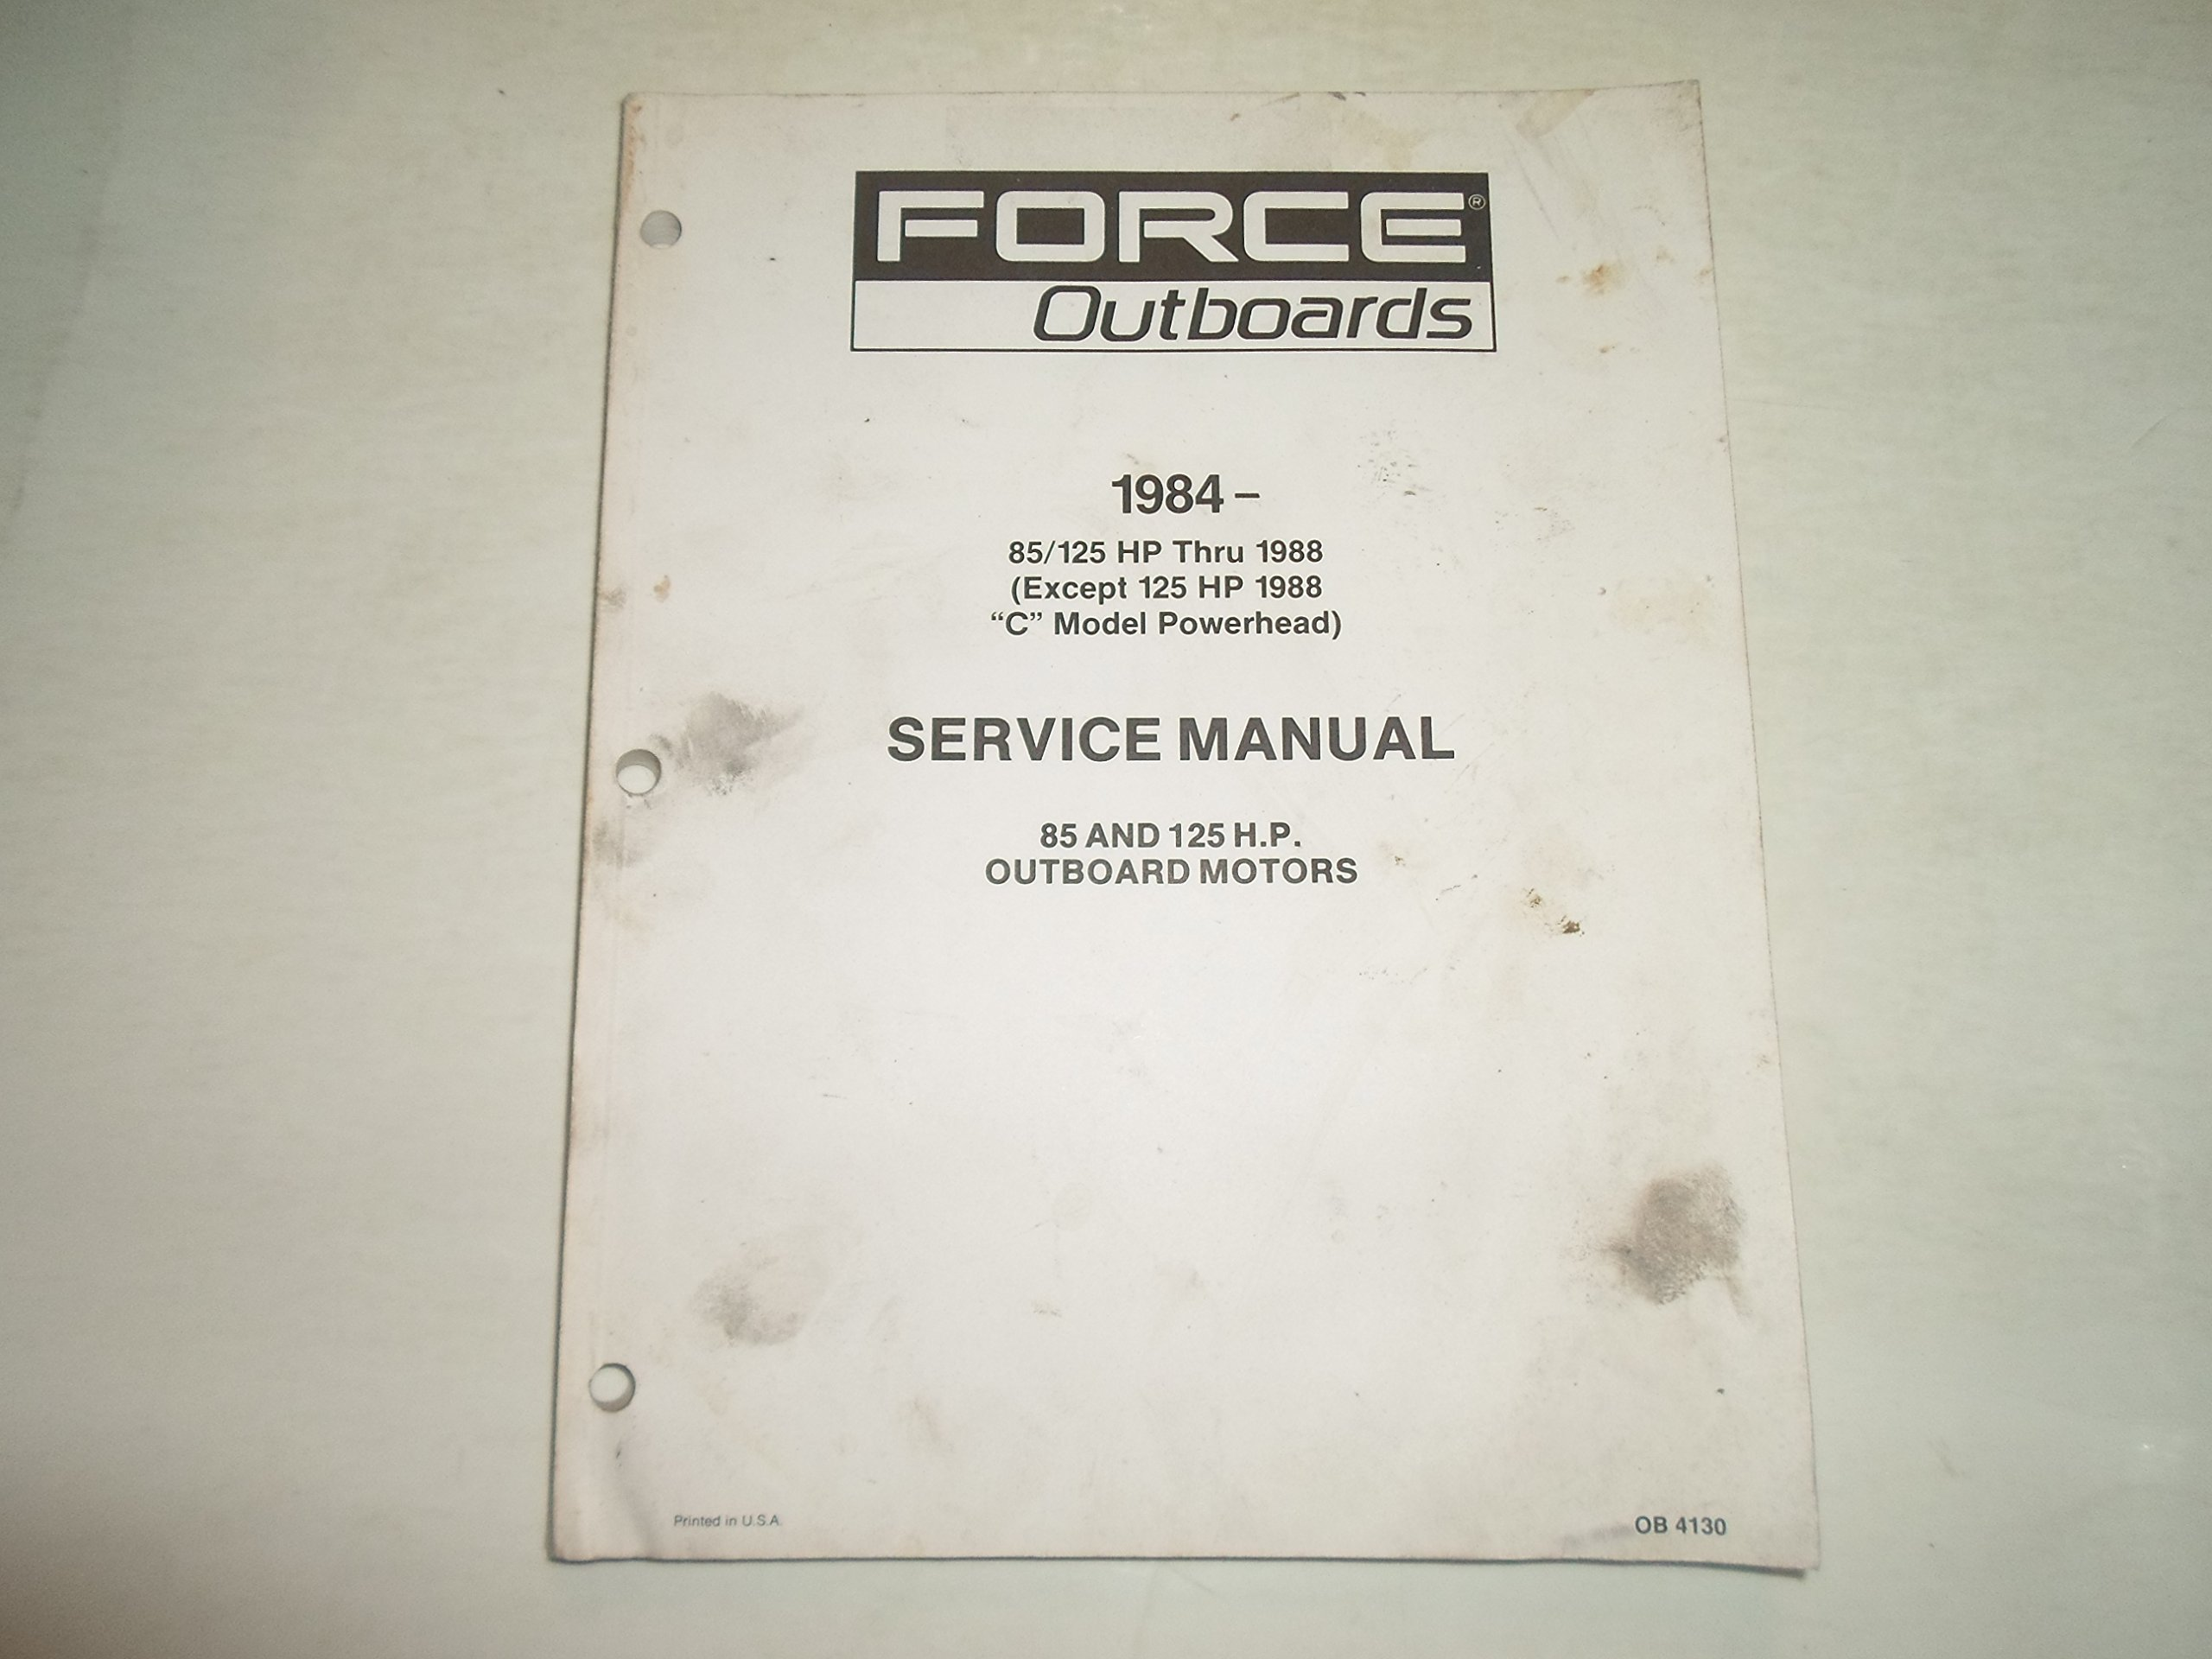 1984 1988 Force Outboards 85 125 HP Motors Service Repair Manual WATER  DAMAGED: FORCE OUTBOARDS: Amazon.com: Books